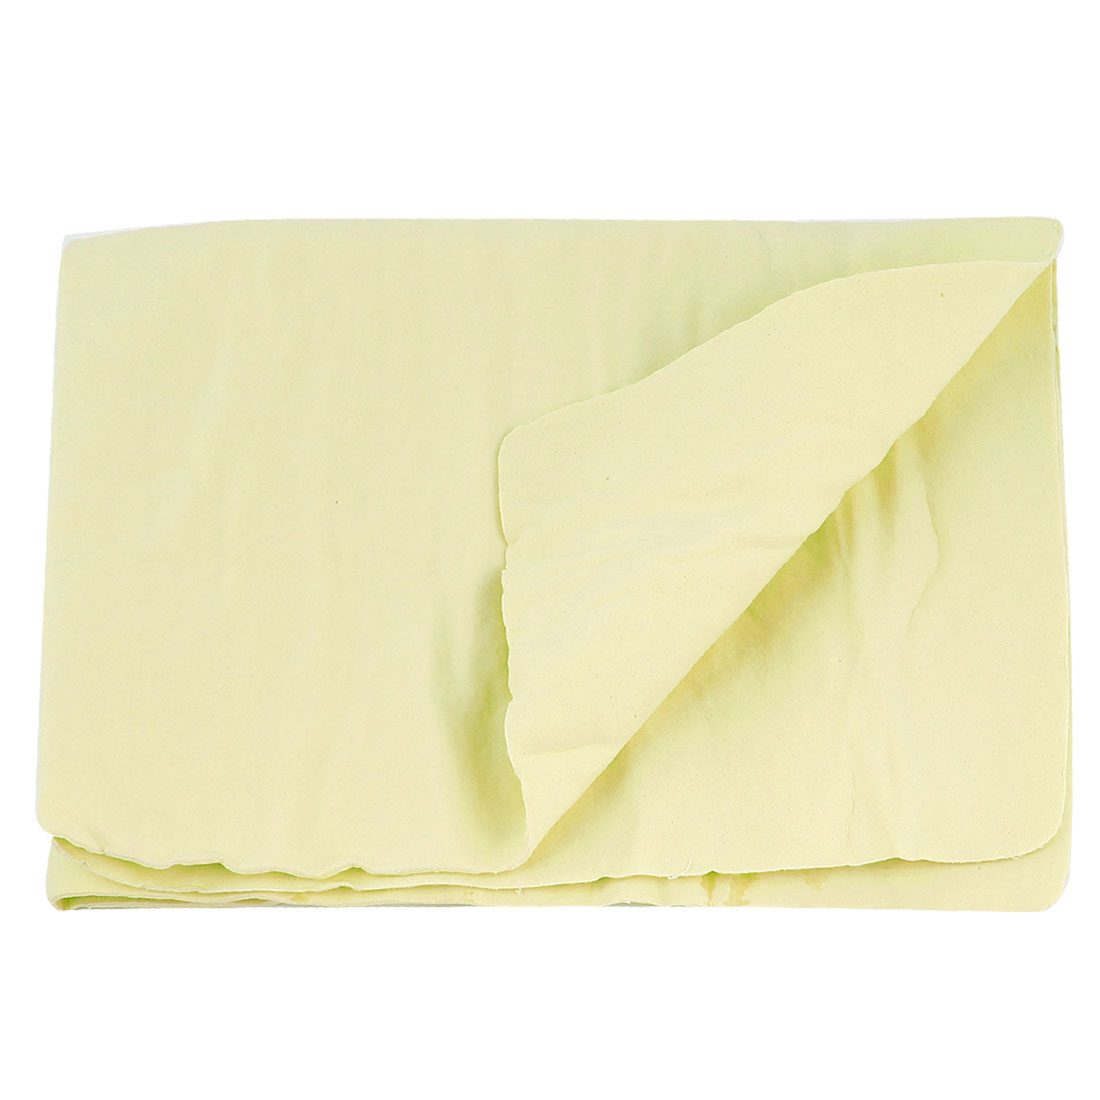 Vehicle Furniture Glass Cleaning Chamois Cham Light Yellow Soft Rectangle Towel